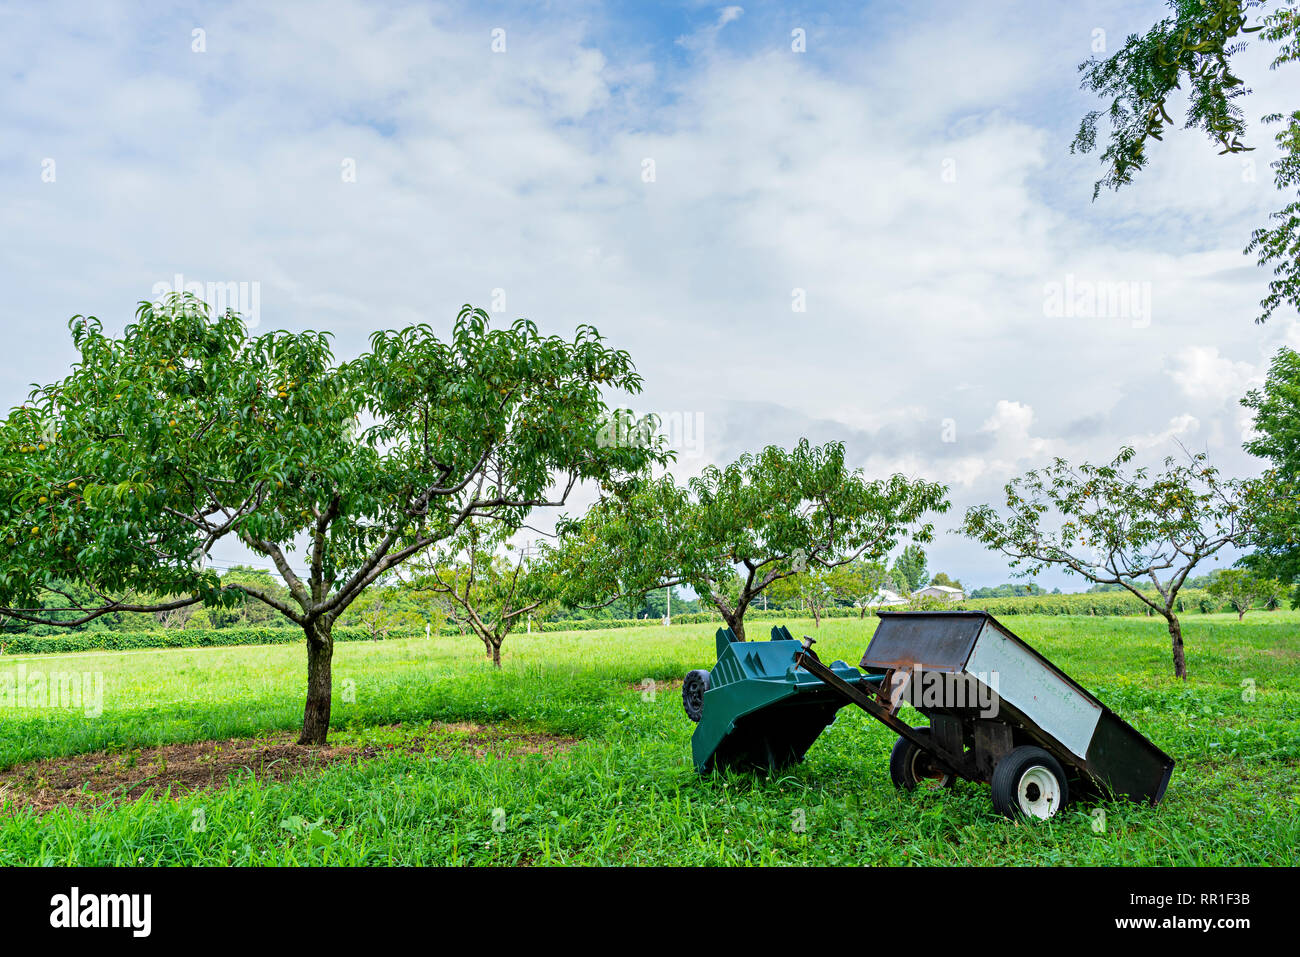 Green Farm With Orchard - Stock Image